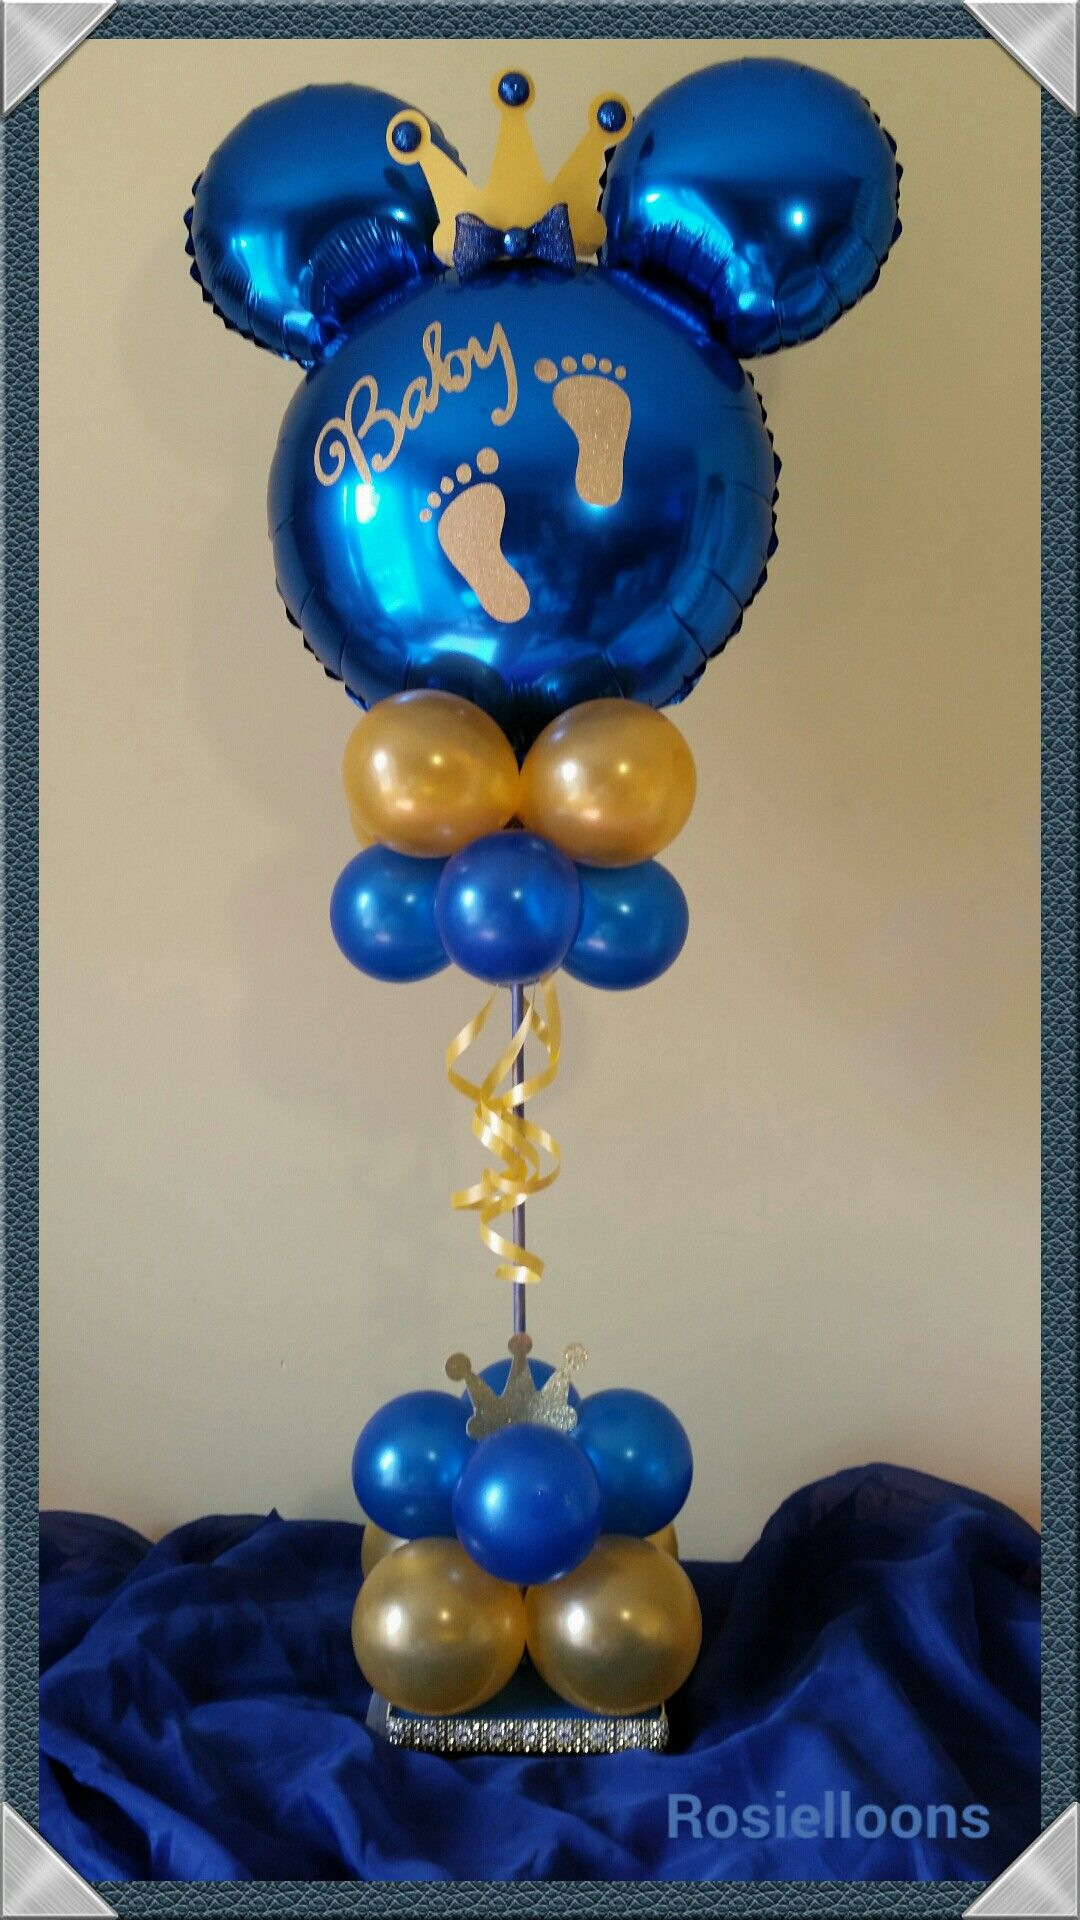 royal baby shower balloon topiary your little one will be the king of the party